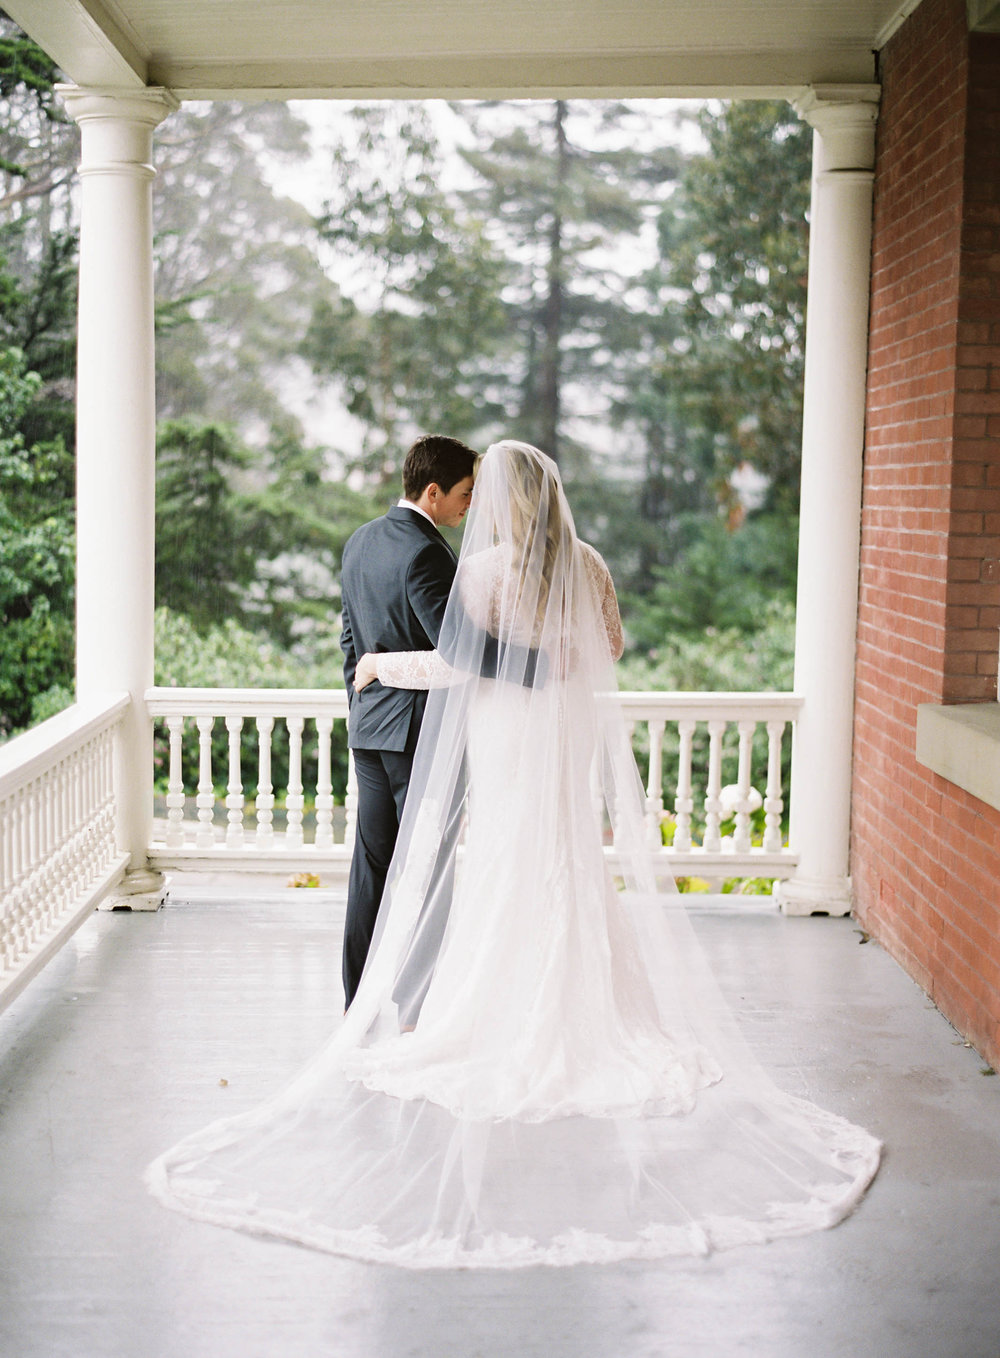 San_Francisco_Wedding_Kelly_Dave_Megan_Wynn_Photography_041.jpg